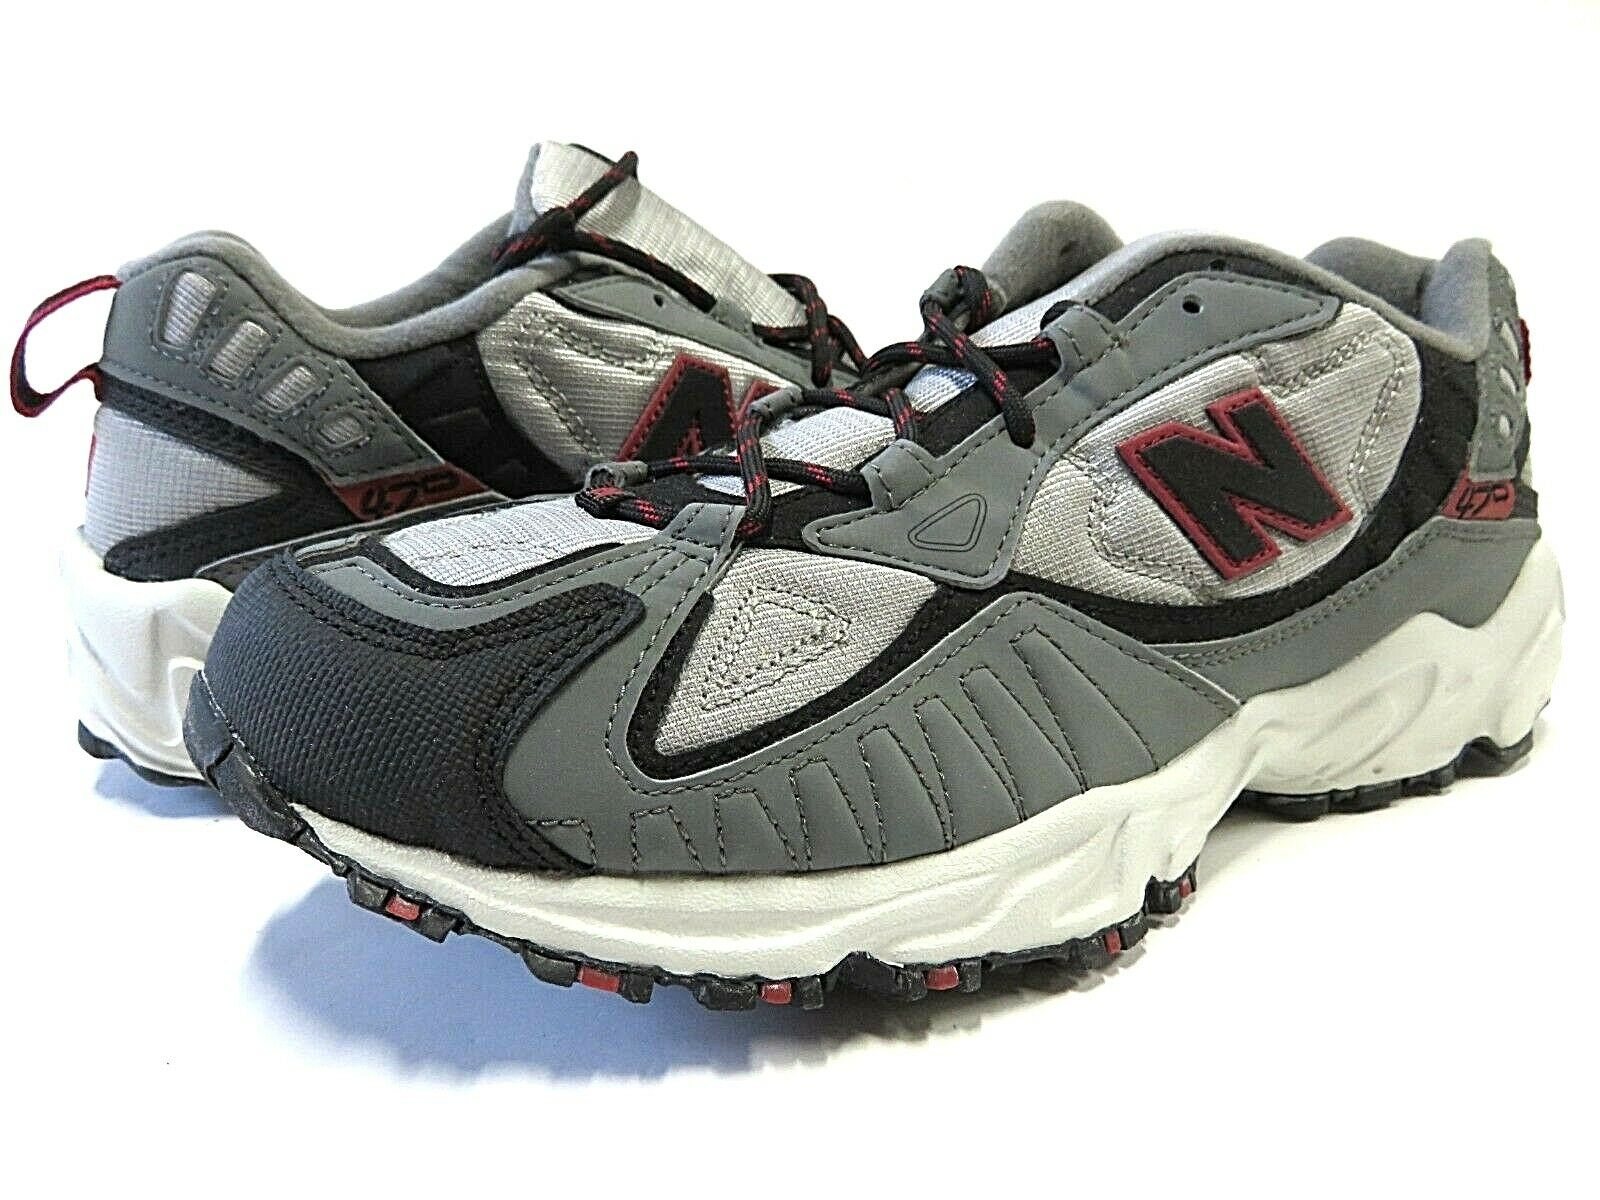 NOS NEW Men's New Balance Casual Athletic shoes Grey Adult Mens Size 12 Dad shoes